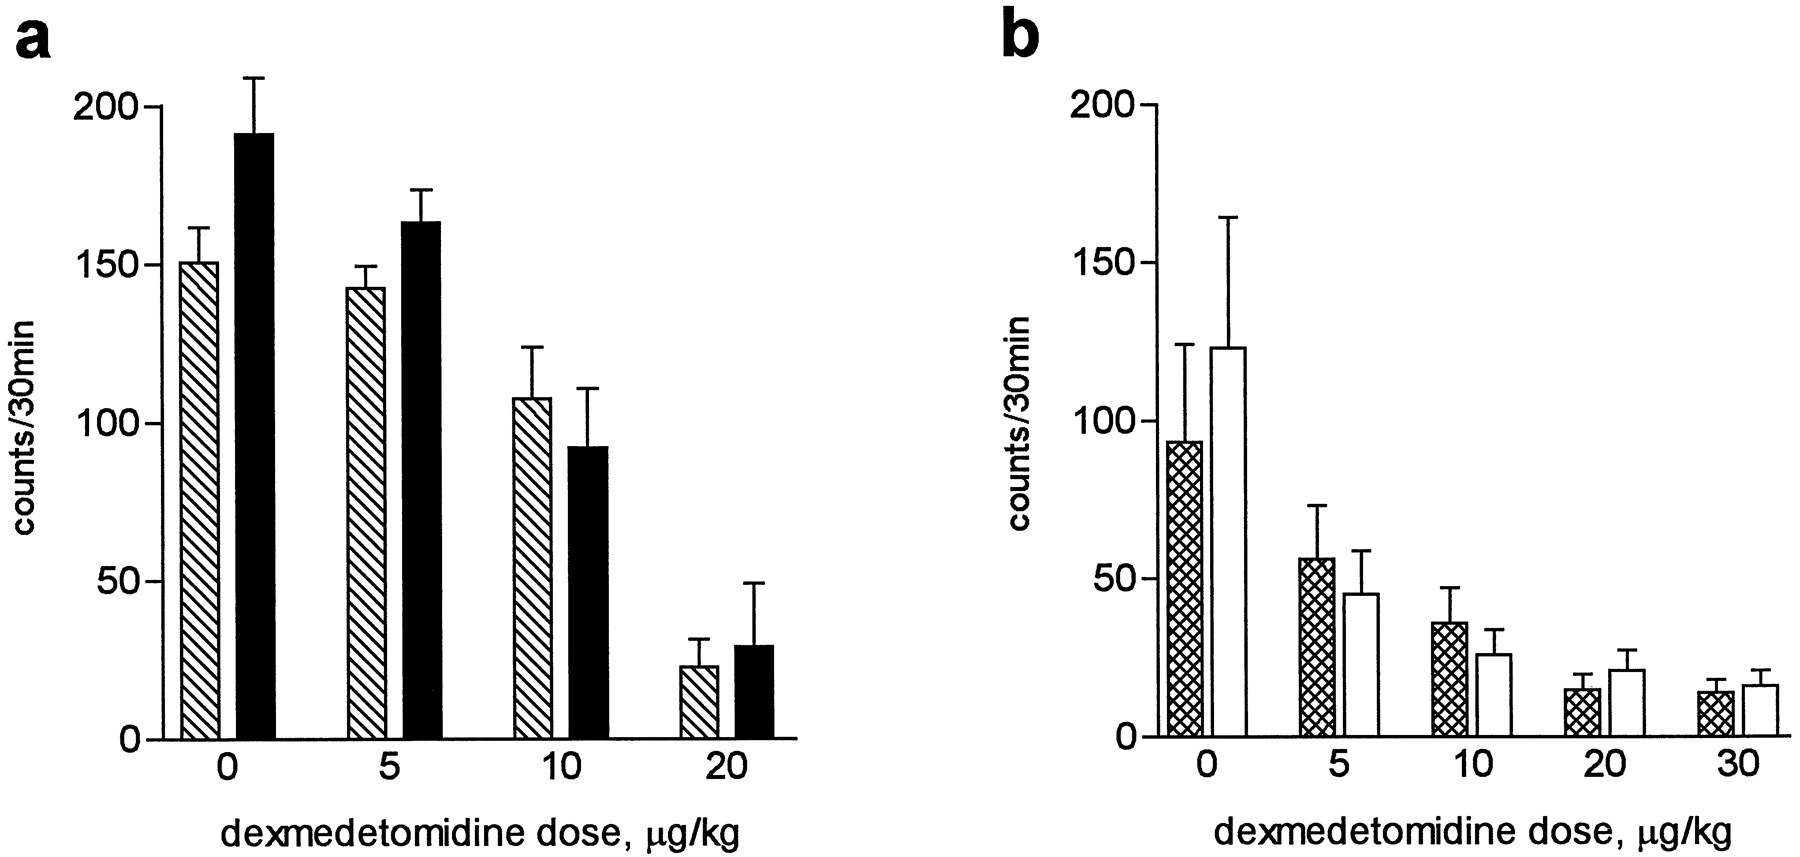 Genetic Alteration of α2C-Adrenoceptor Expression in Mice: Influence